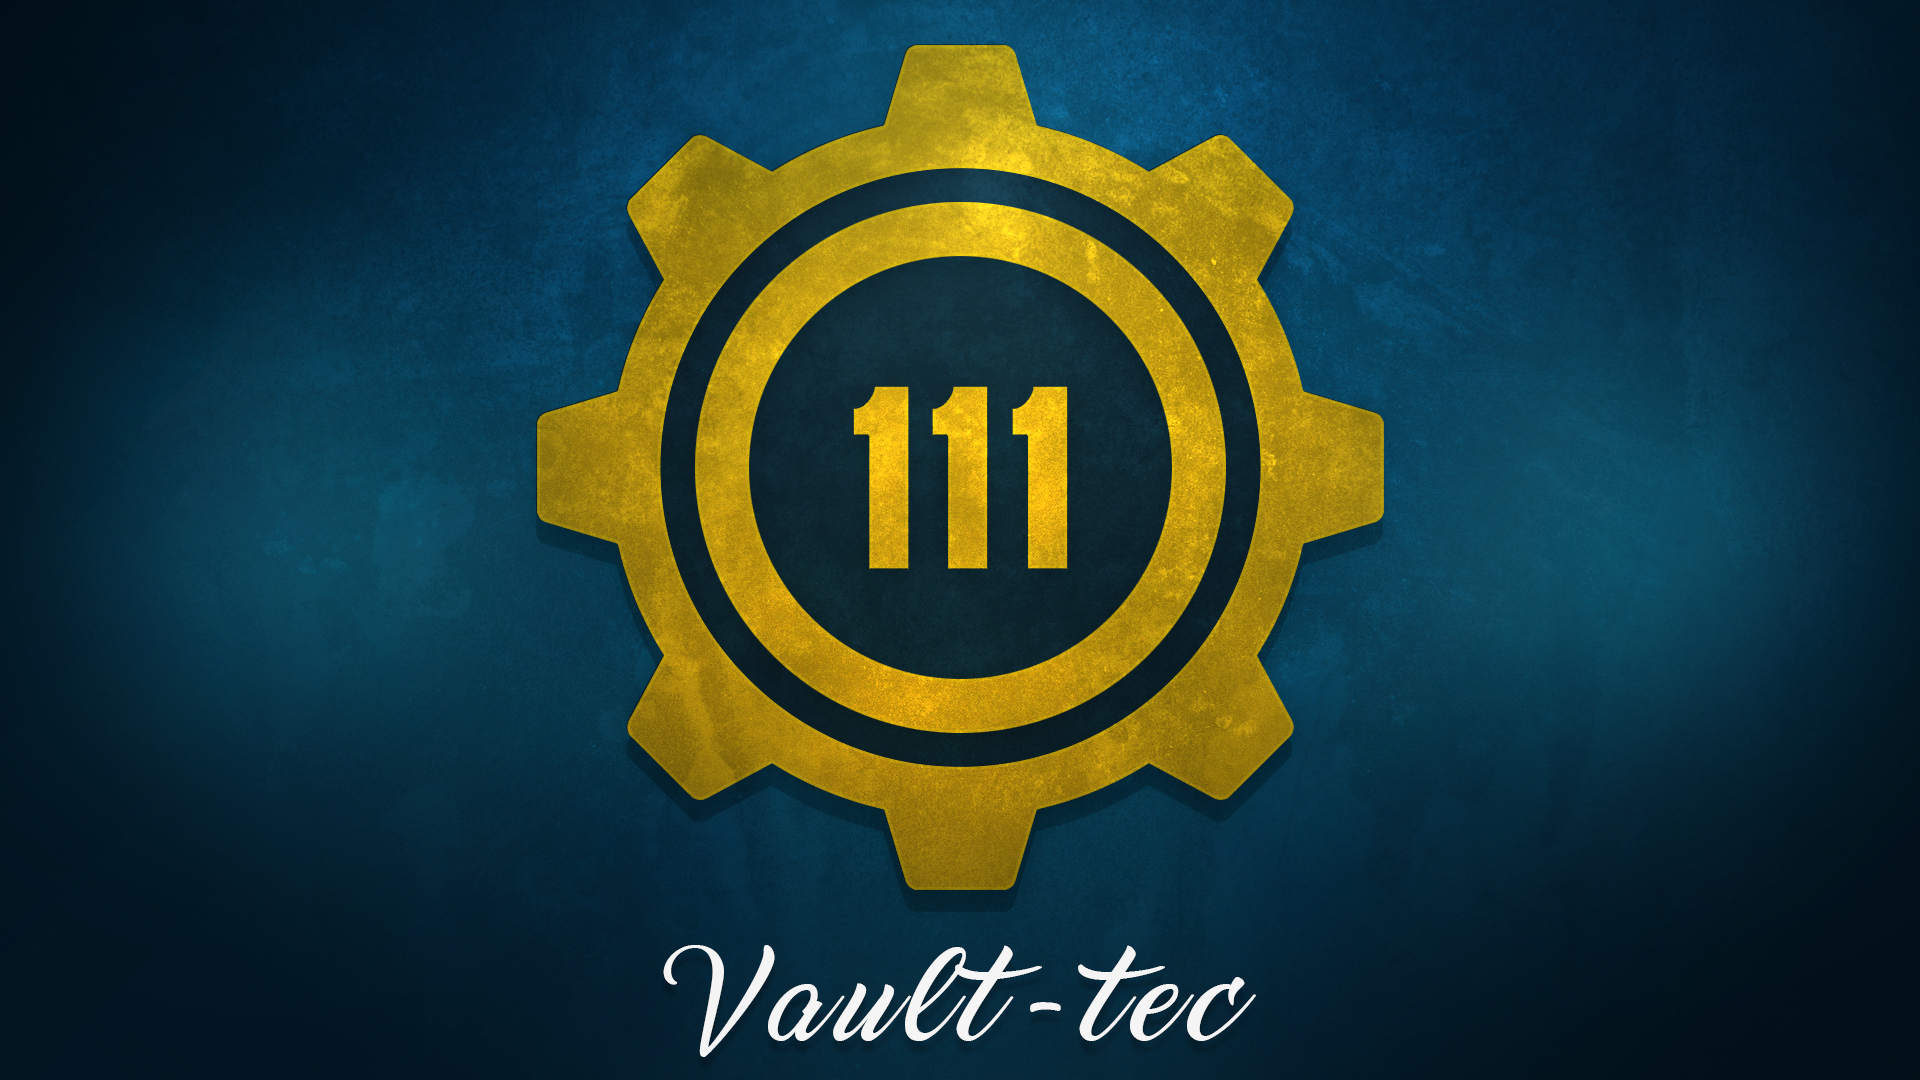 Download Vault Tec Wallpaper Gallery